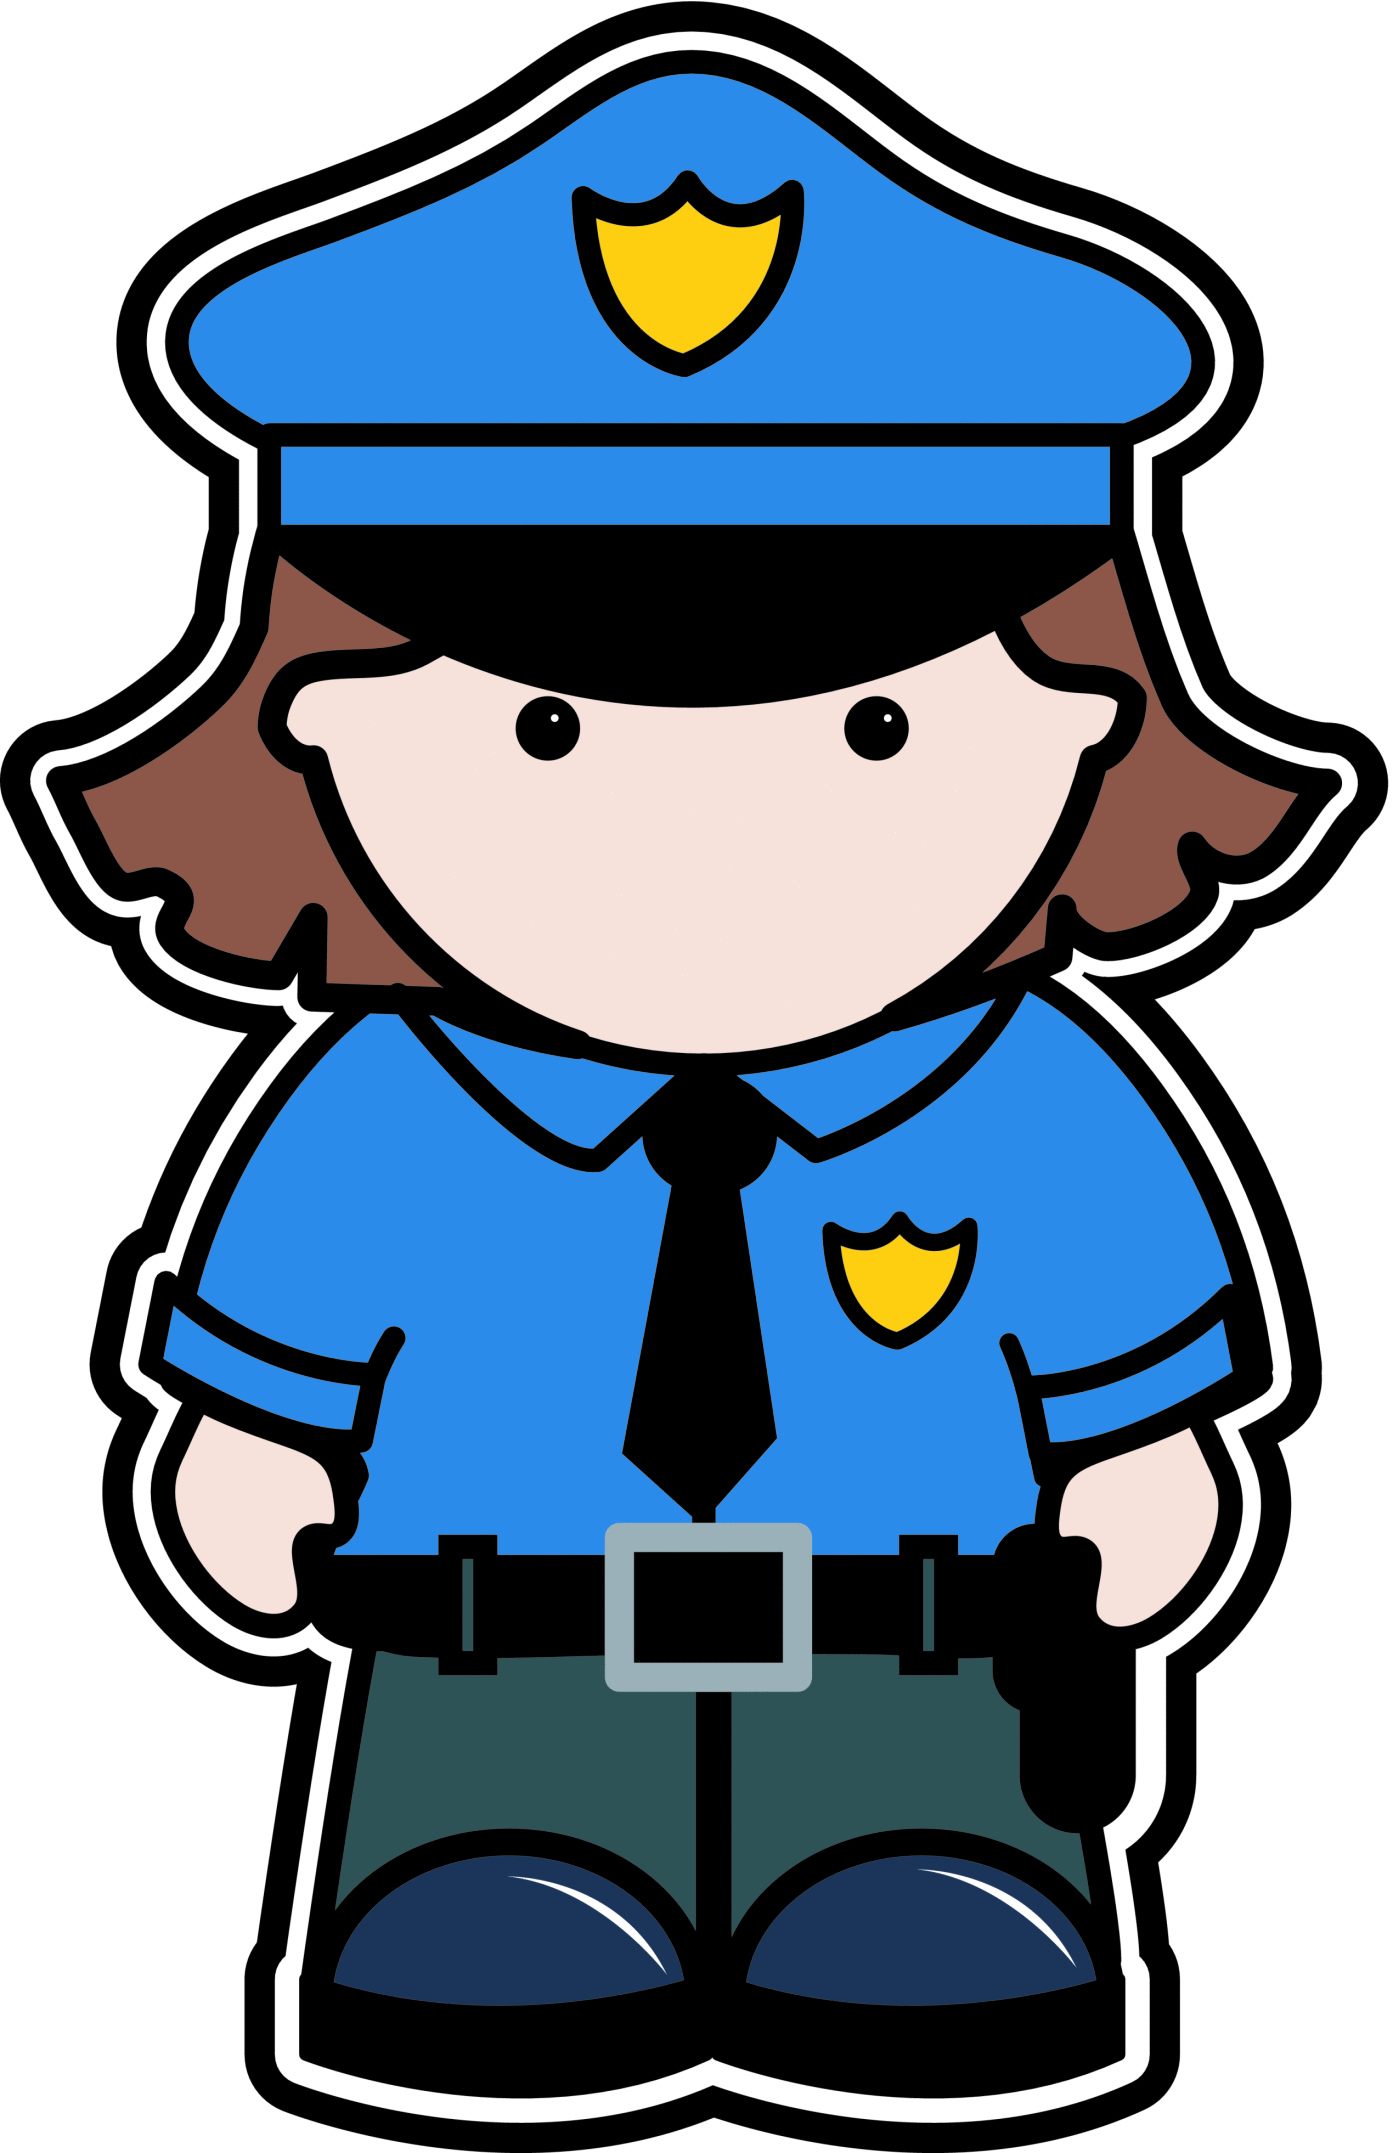 Police Officer Clipart - Clipart SuggestPolice Woman Clip Art Free